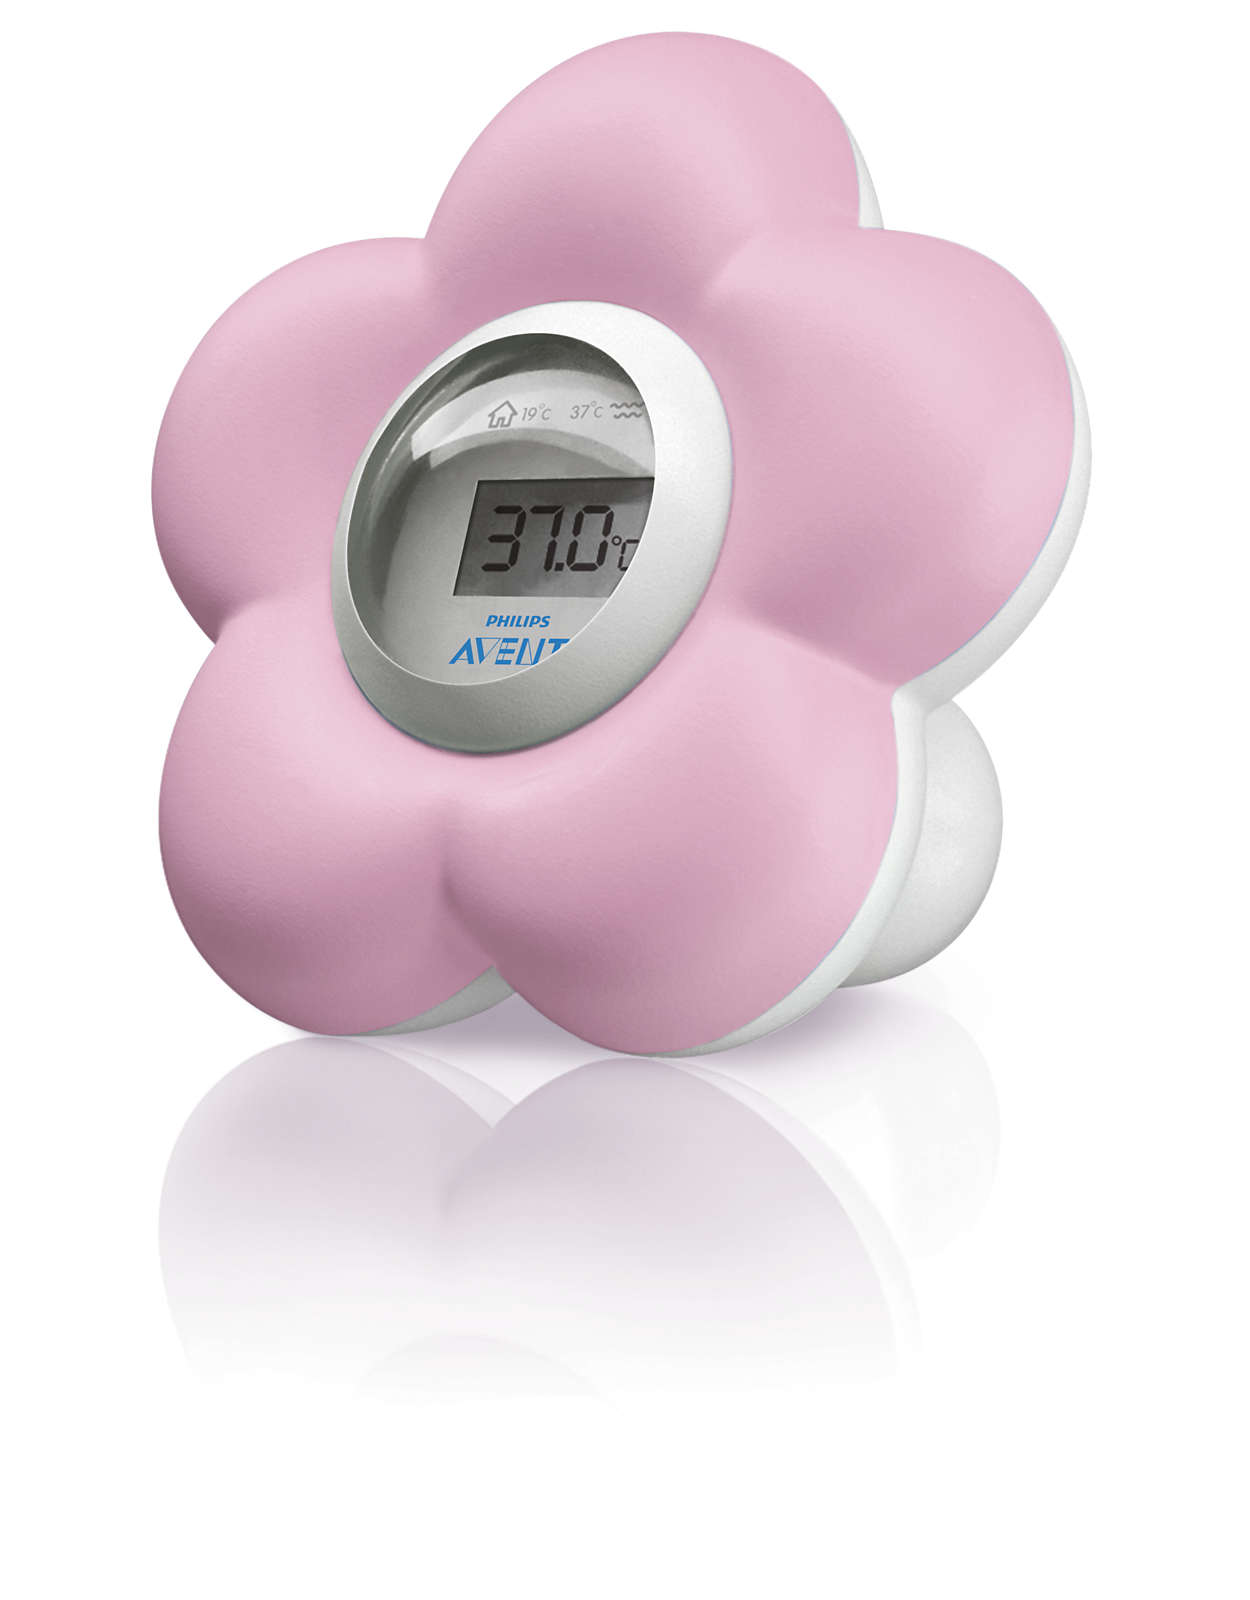 Avent Bath and Room Thermometer